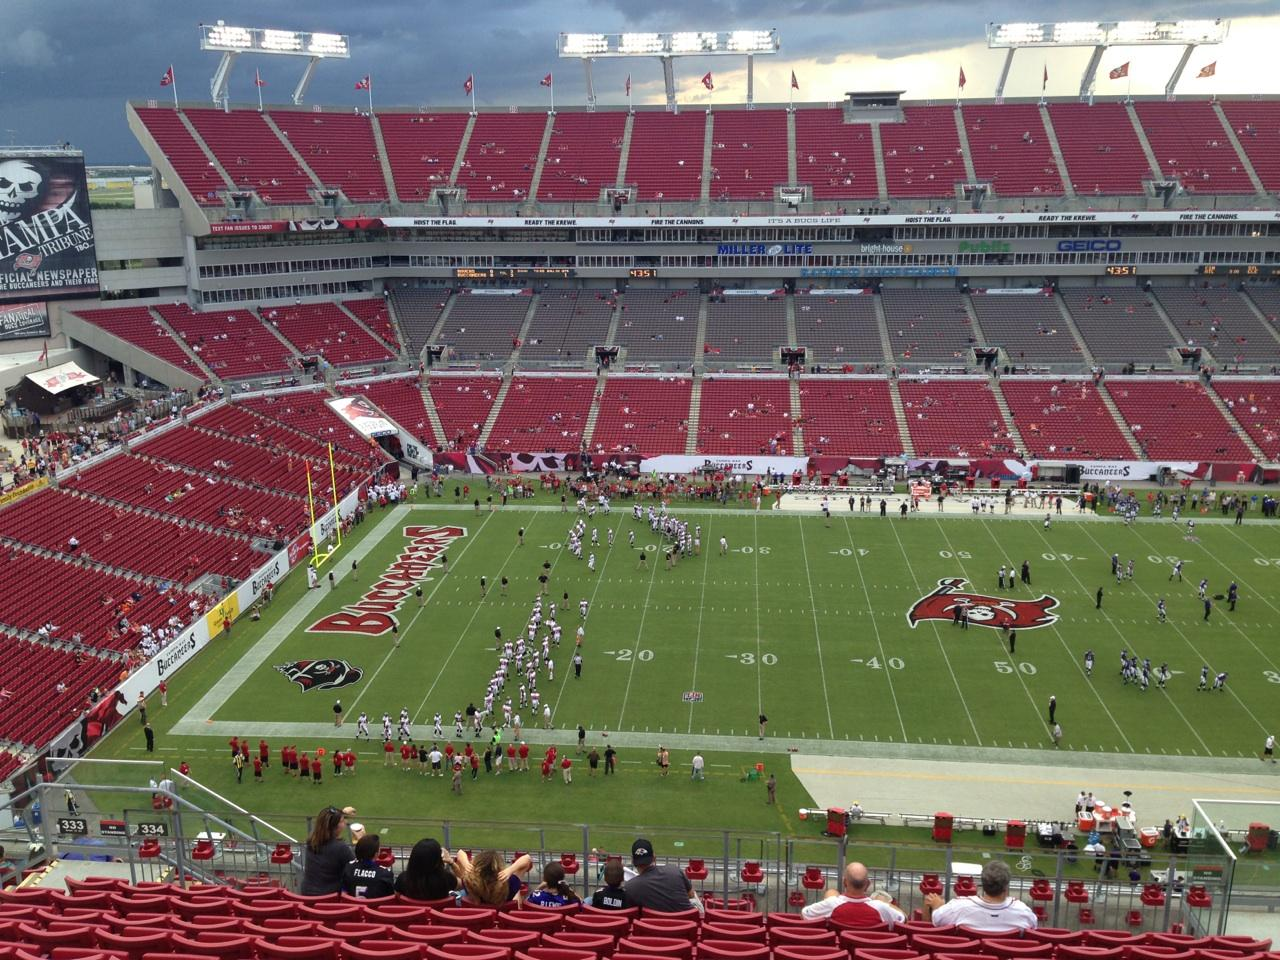 Tampa Bay Buccaneers - Raymond James Stadium Section 334 ...